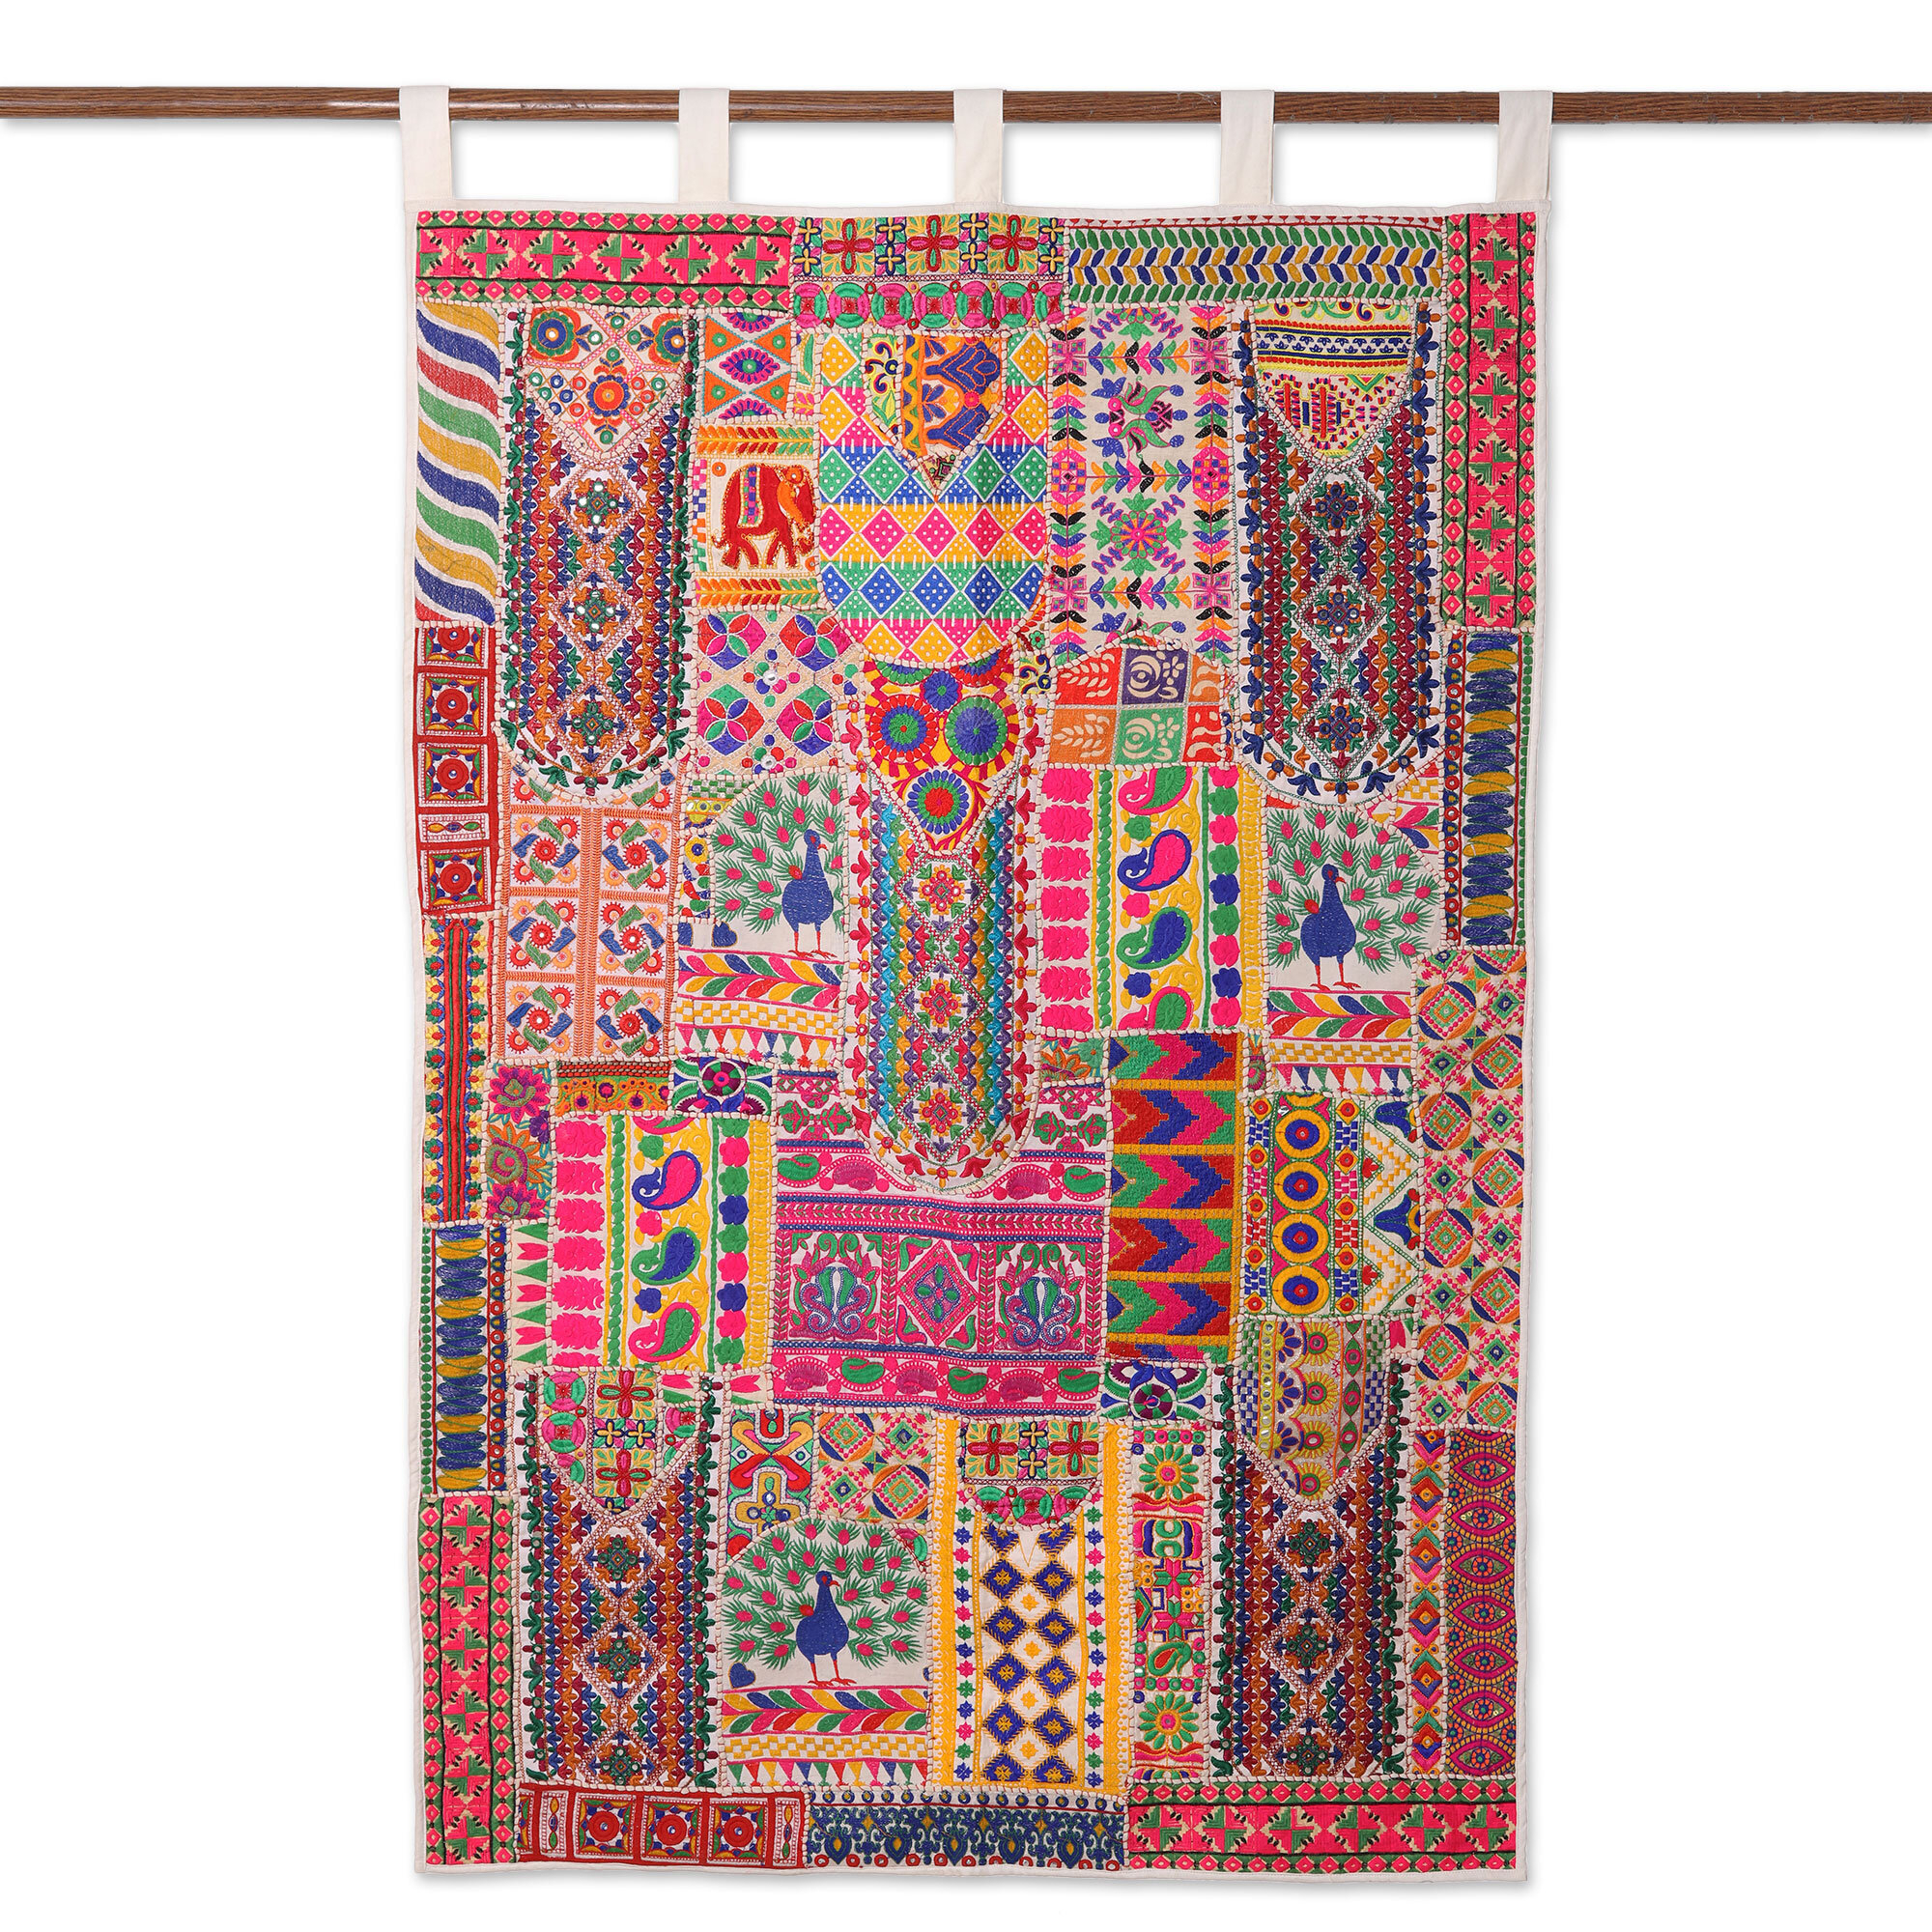 Rod Tan Tapestries You'll Love In 2021 | Wayfair Intended For Newest Blended Fabric Teresina Wool And Viscose Wall Hangings With Hanging Accessories Included (View 12 of 20)